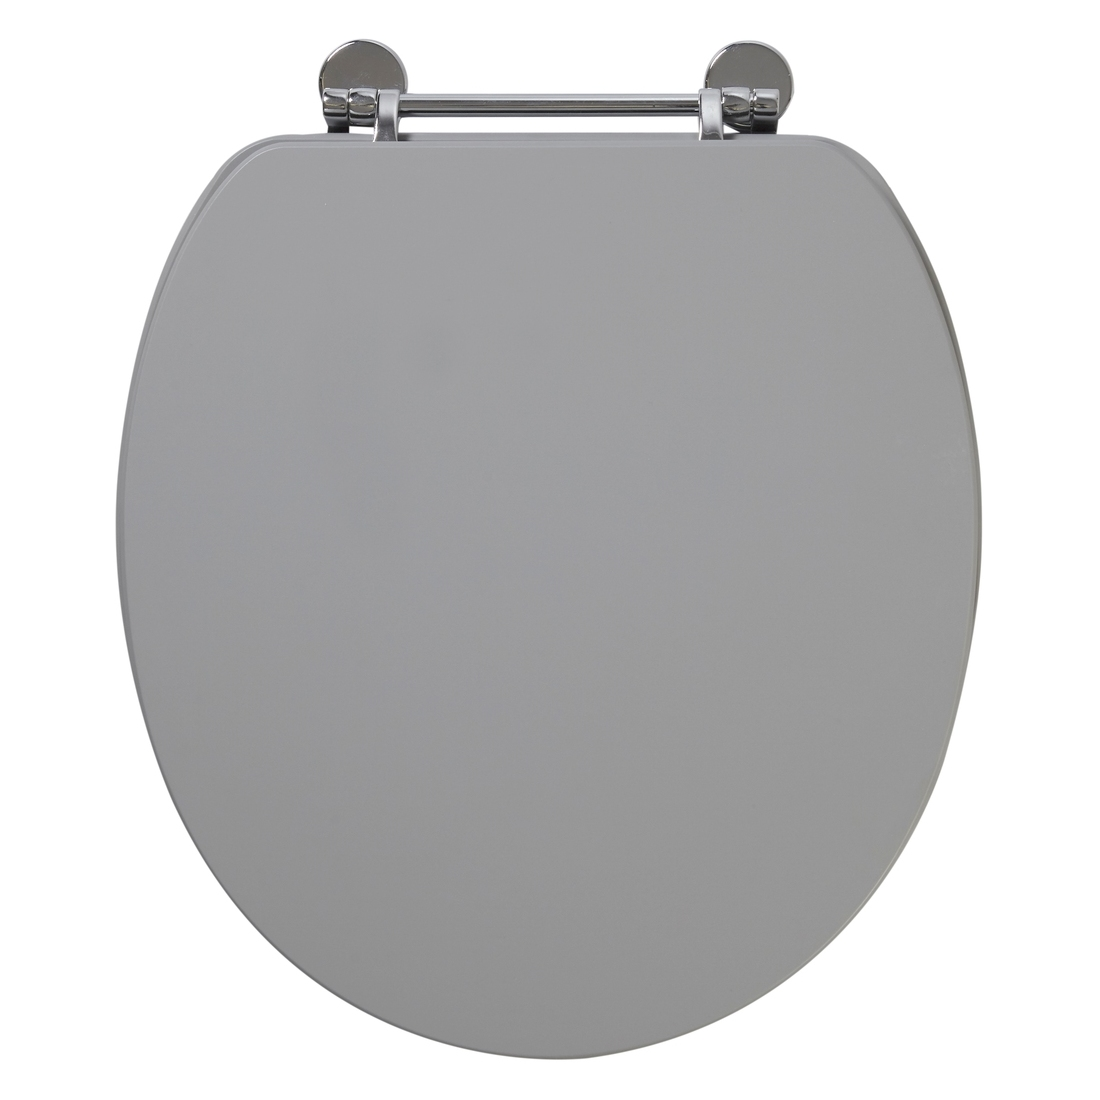 Fantastic Frontline Dust Grey Soft Close Wooden Toilet Seat Gmtry Best Dining Table And Chair Ideas Images Gmtryco